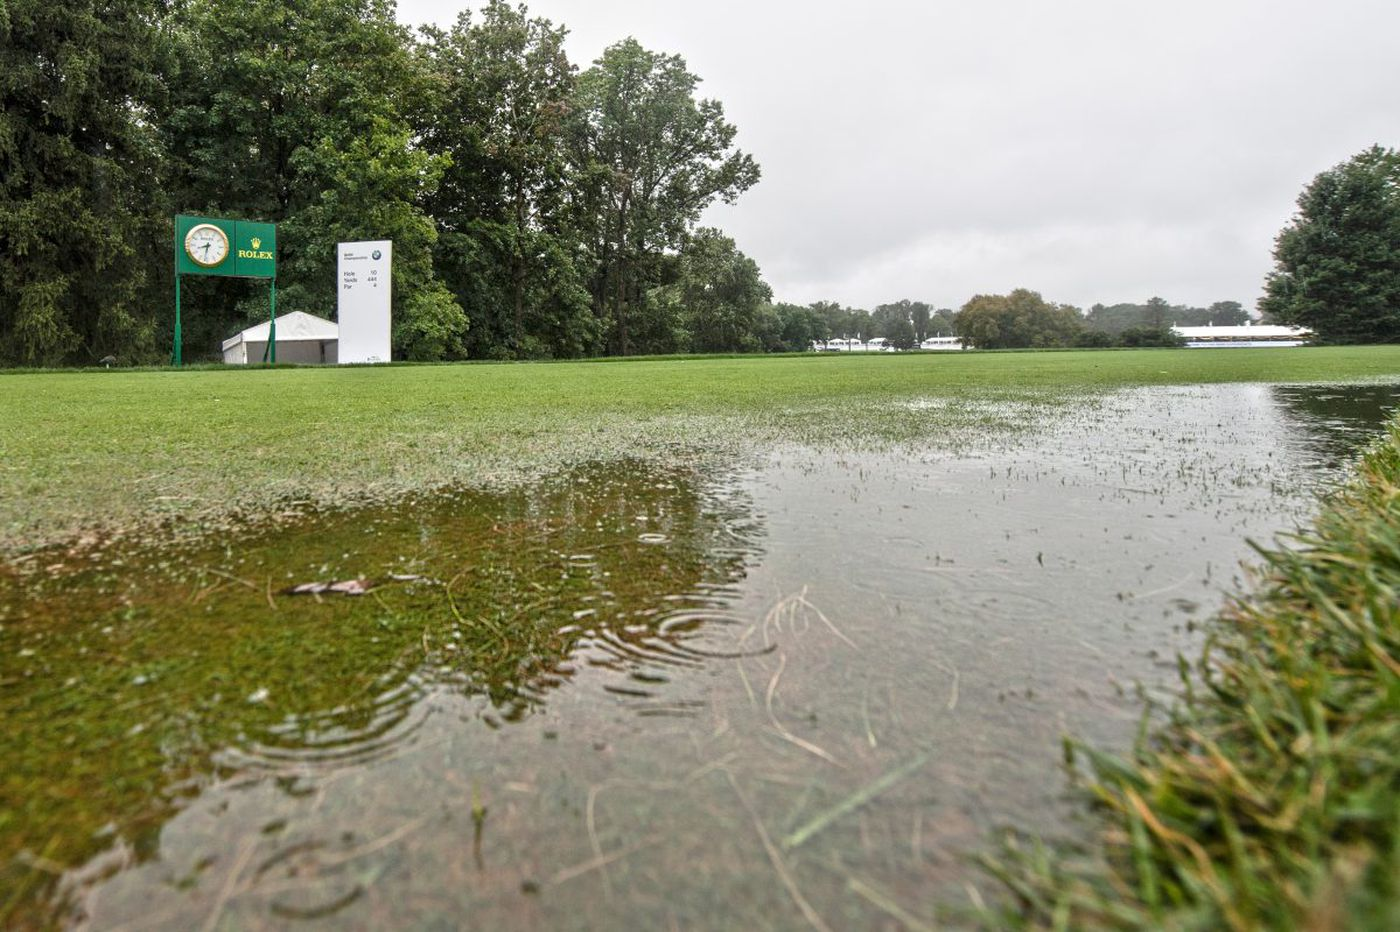 Steady rain forces postponement of BMW Championship final round